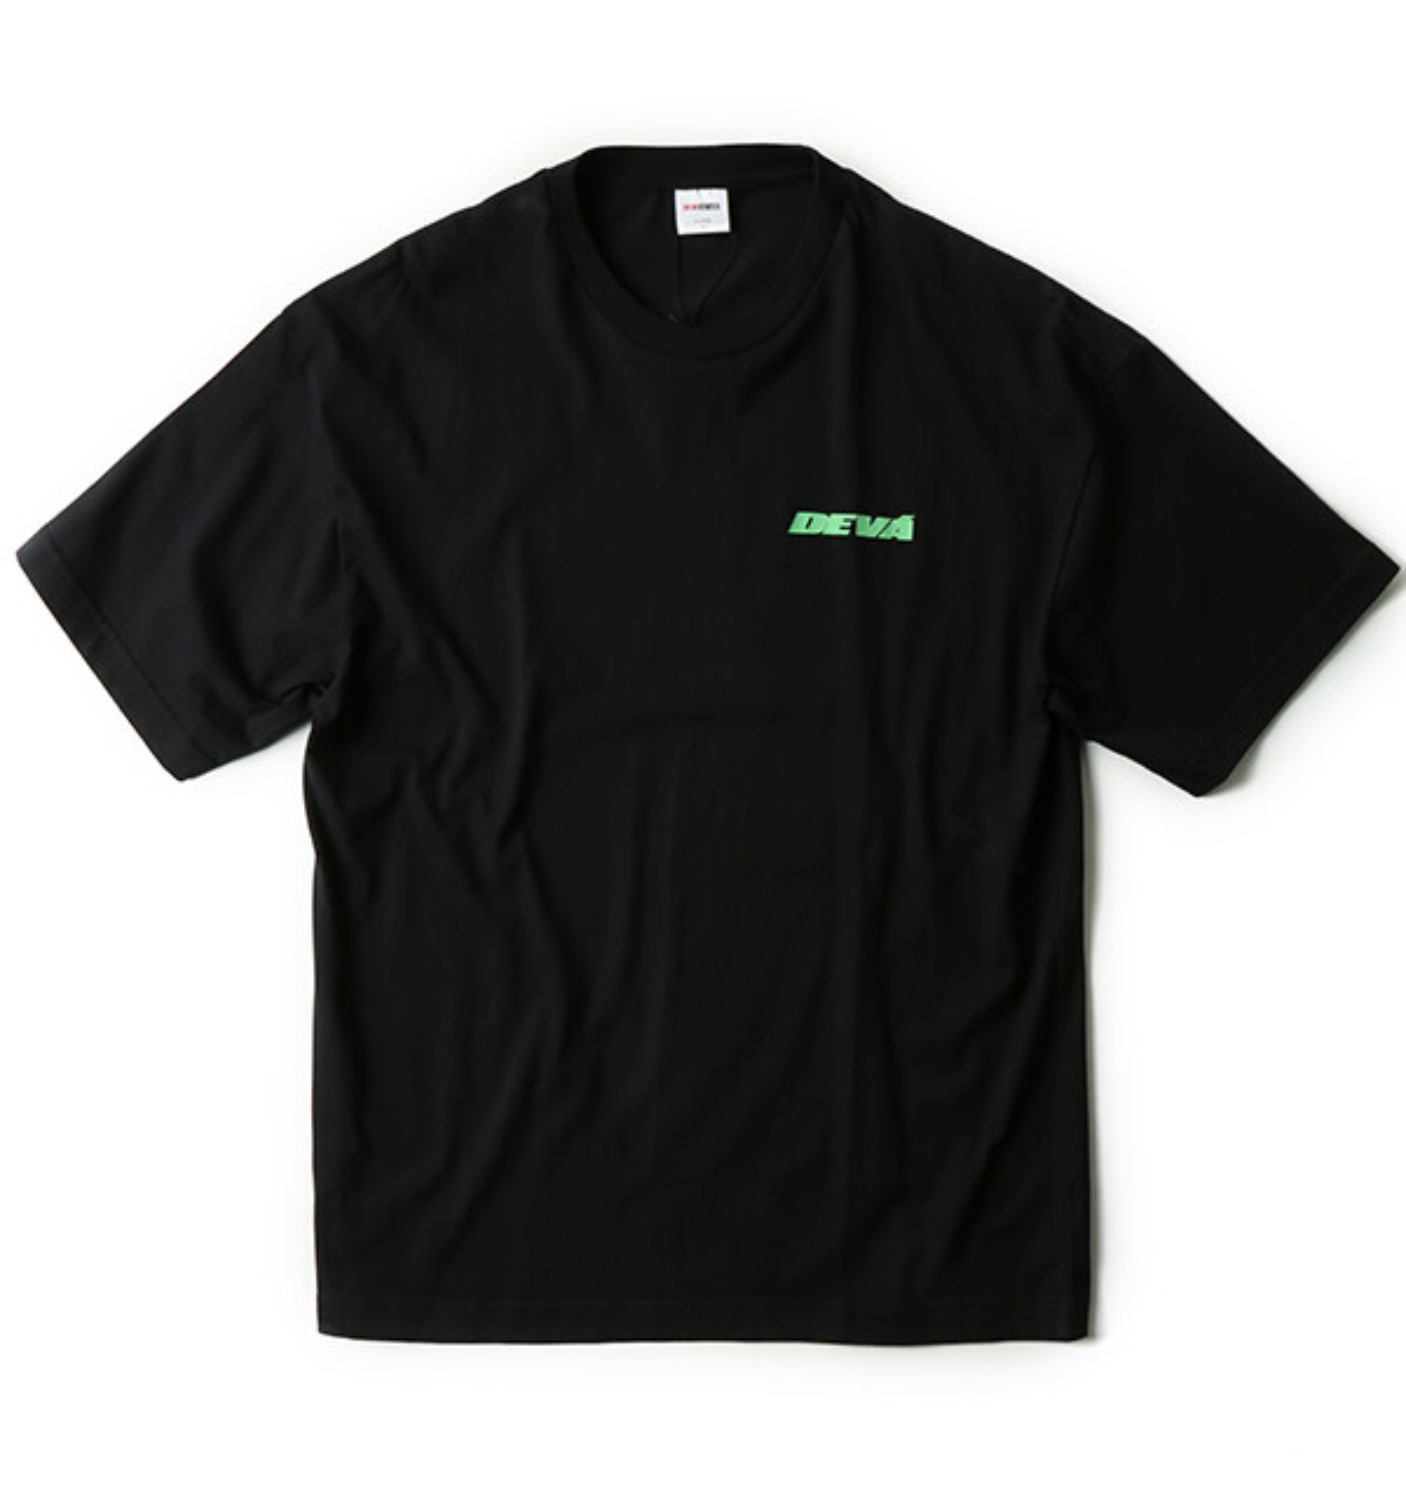 JOKER & THIEF T-SHIRT BLACK